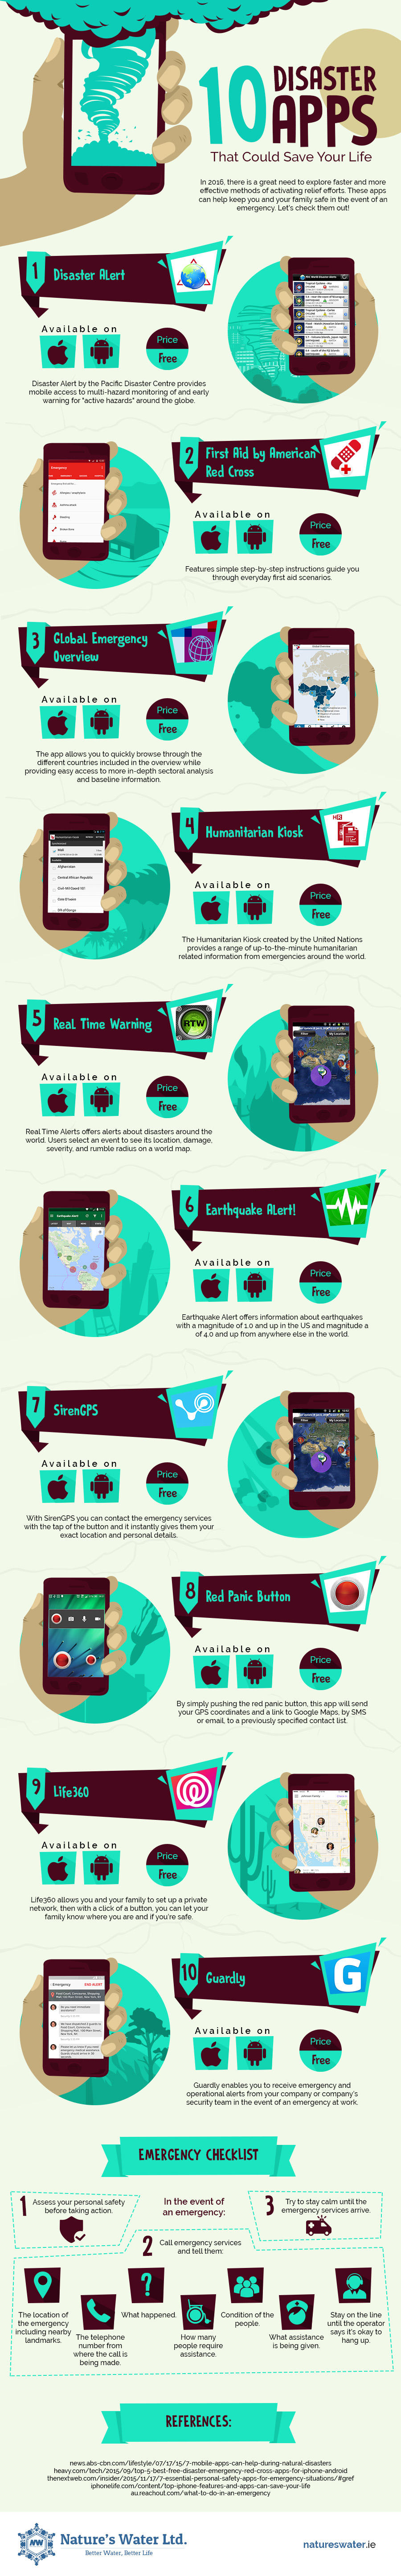 10-disaster-apps-that-could-save-your-life-infographic